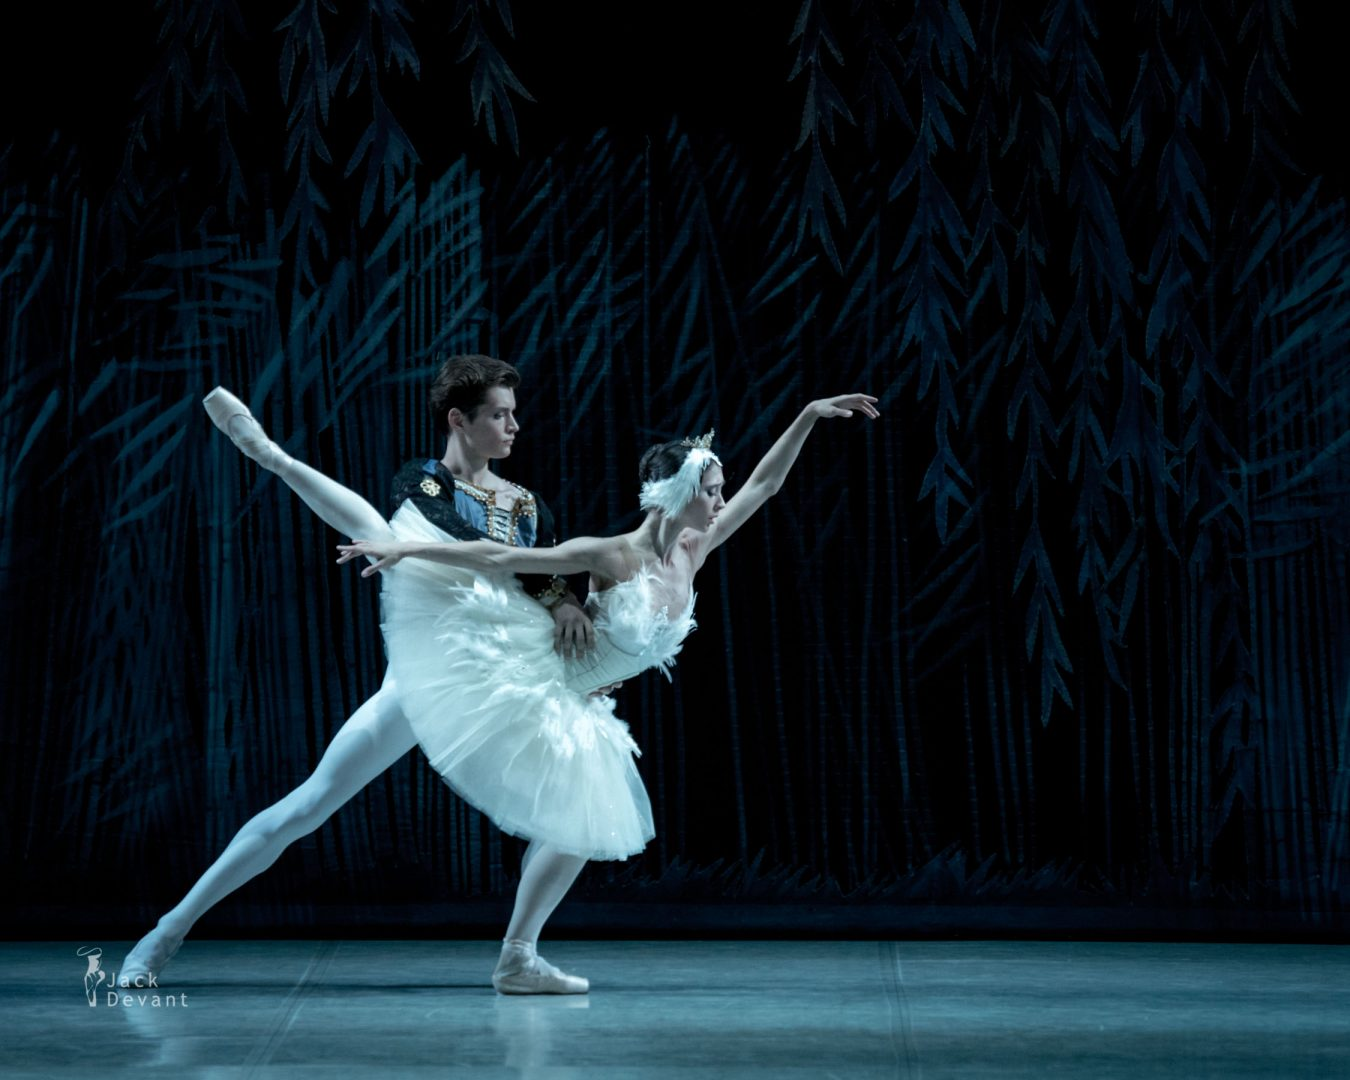 Polina Buldakova (Полина Булдакова) as Odette-Odile Oleg Kulikov (Олег Куликов) as Prince Ziegfried in Swan lake